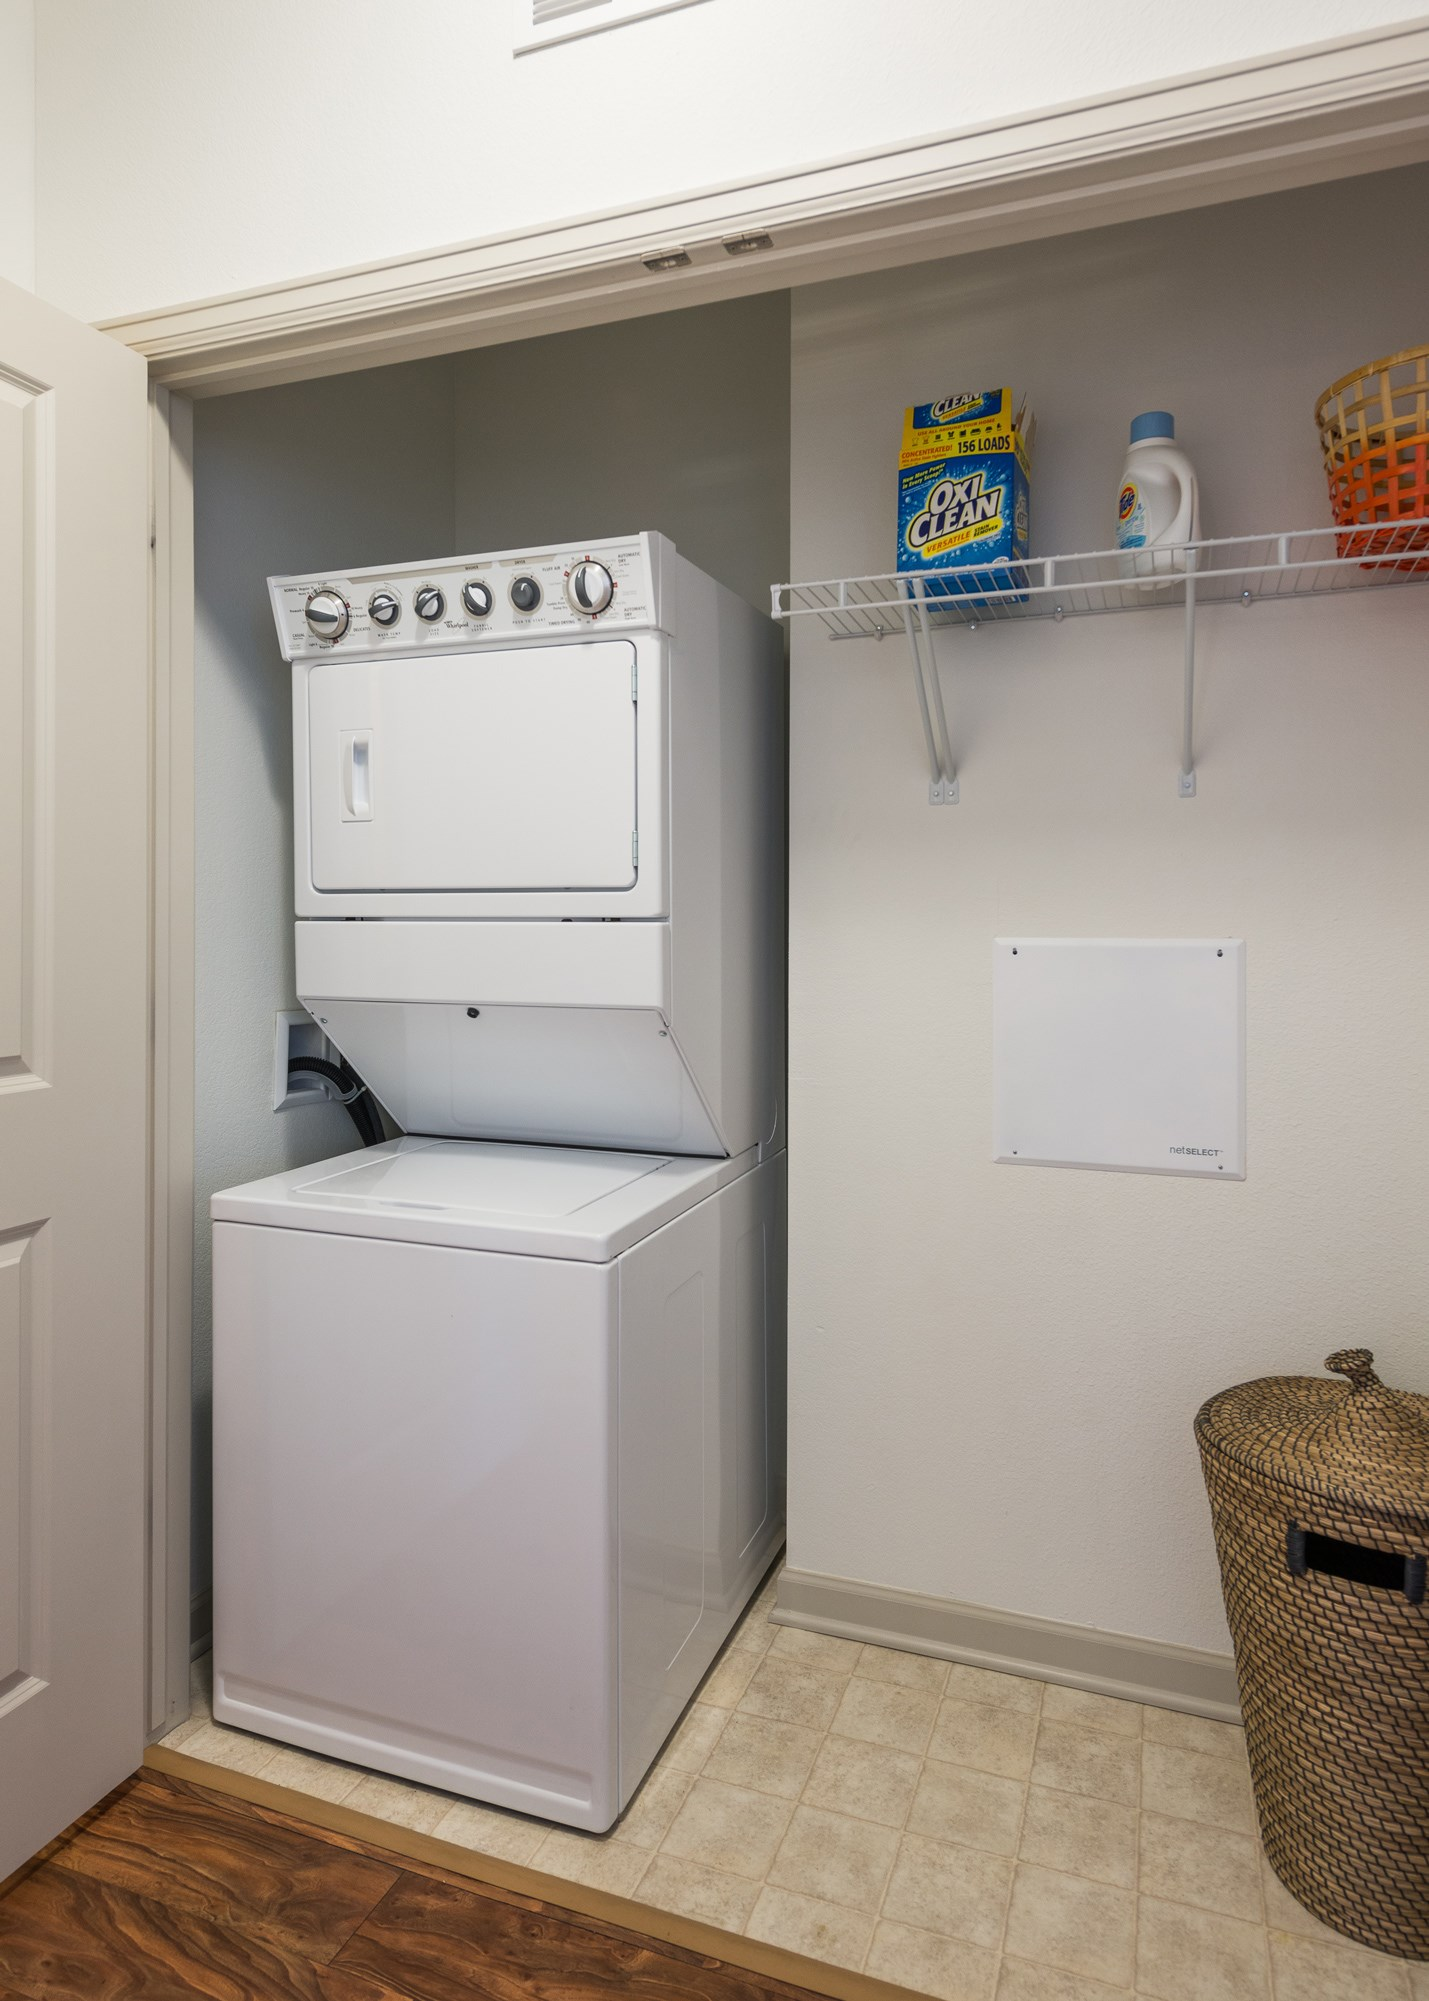 Laundry Room at Arterra Place Apartments in Aurora, CO